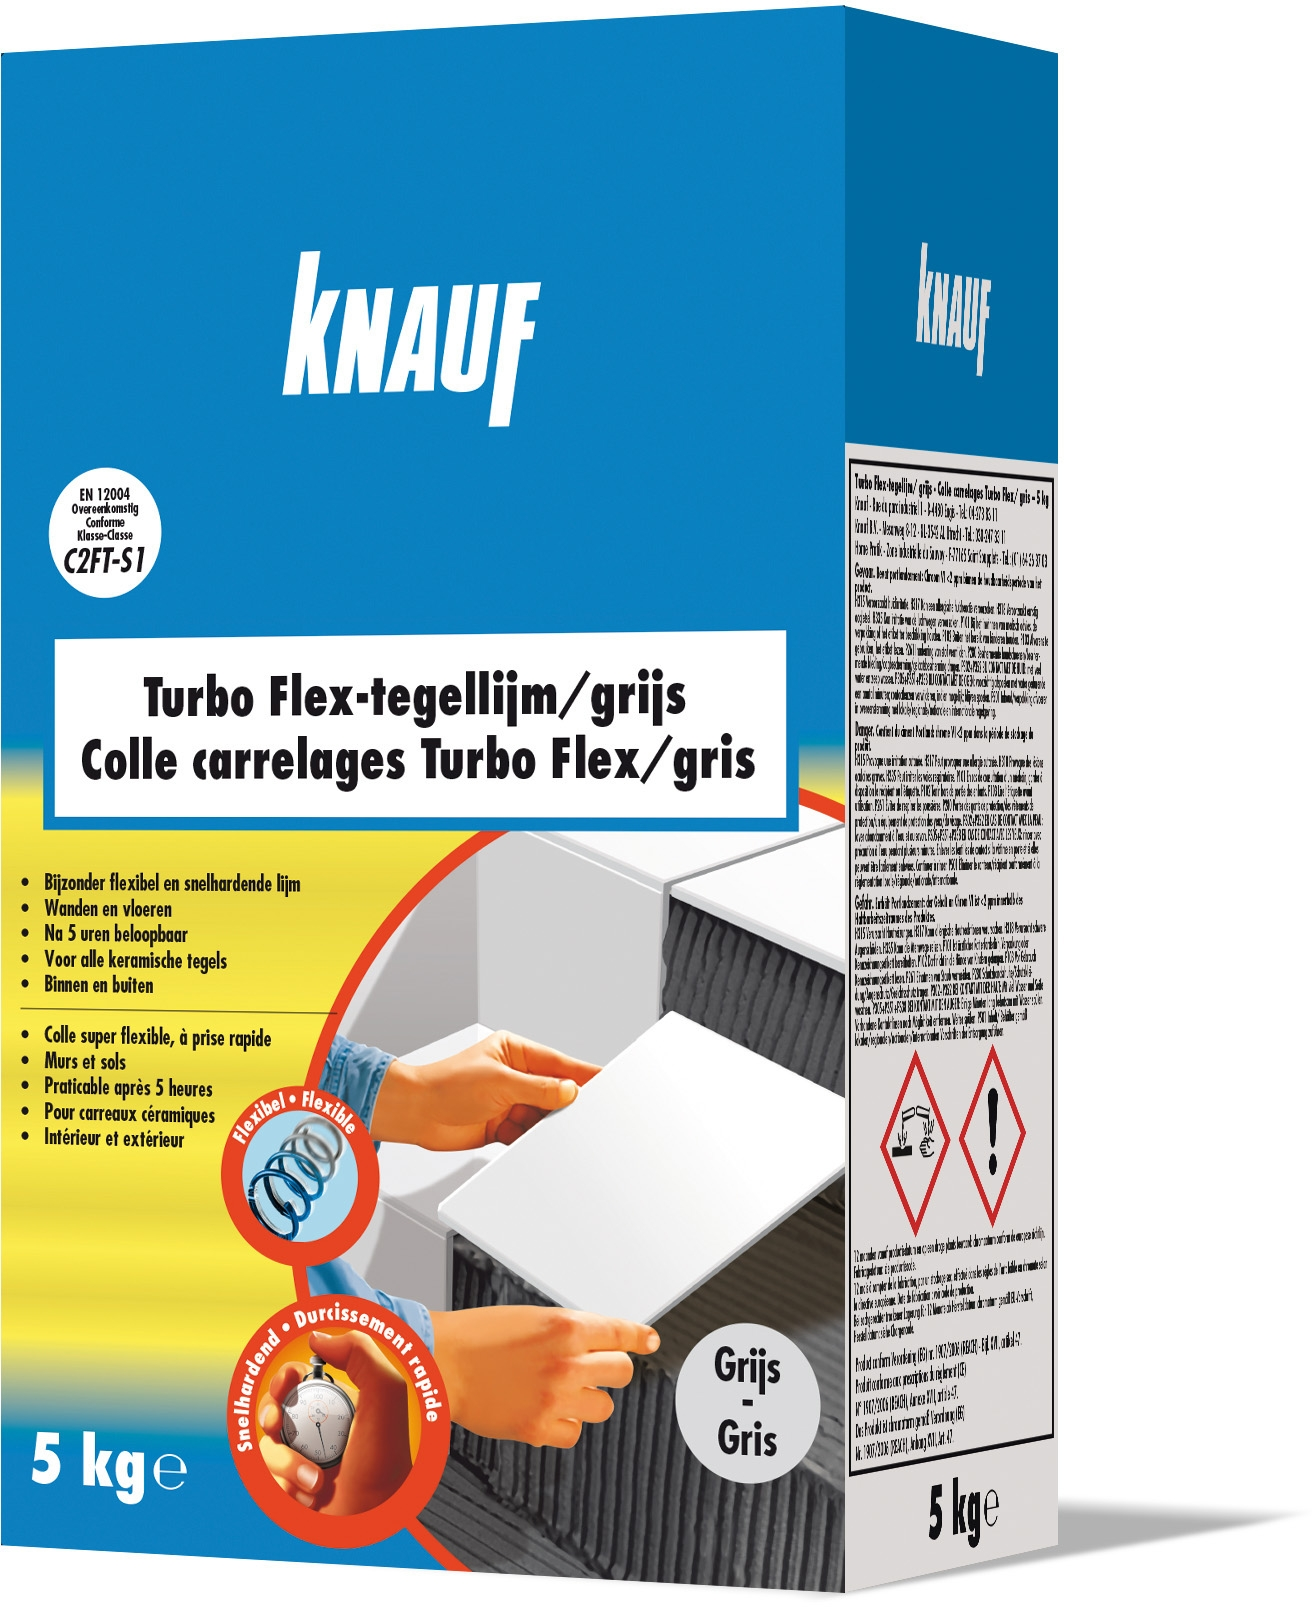 Pose Carrelage Exterieur Barbotine Colle Pour Carrelage Turbo Flex 5 Kg Knauf Mr Bricolage